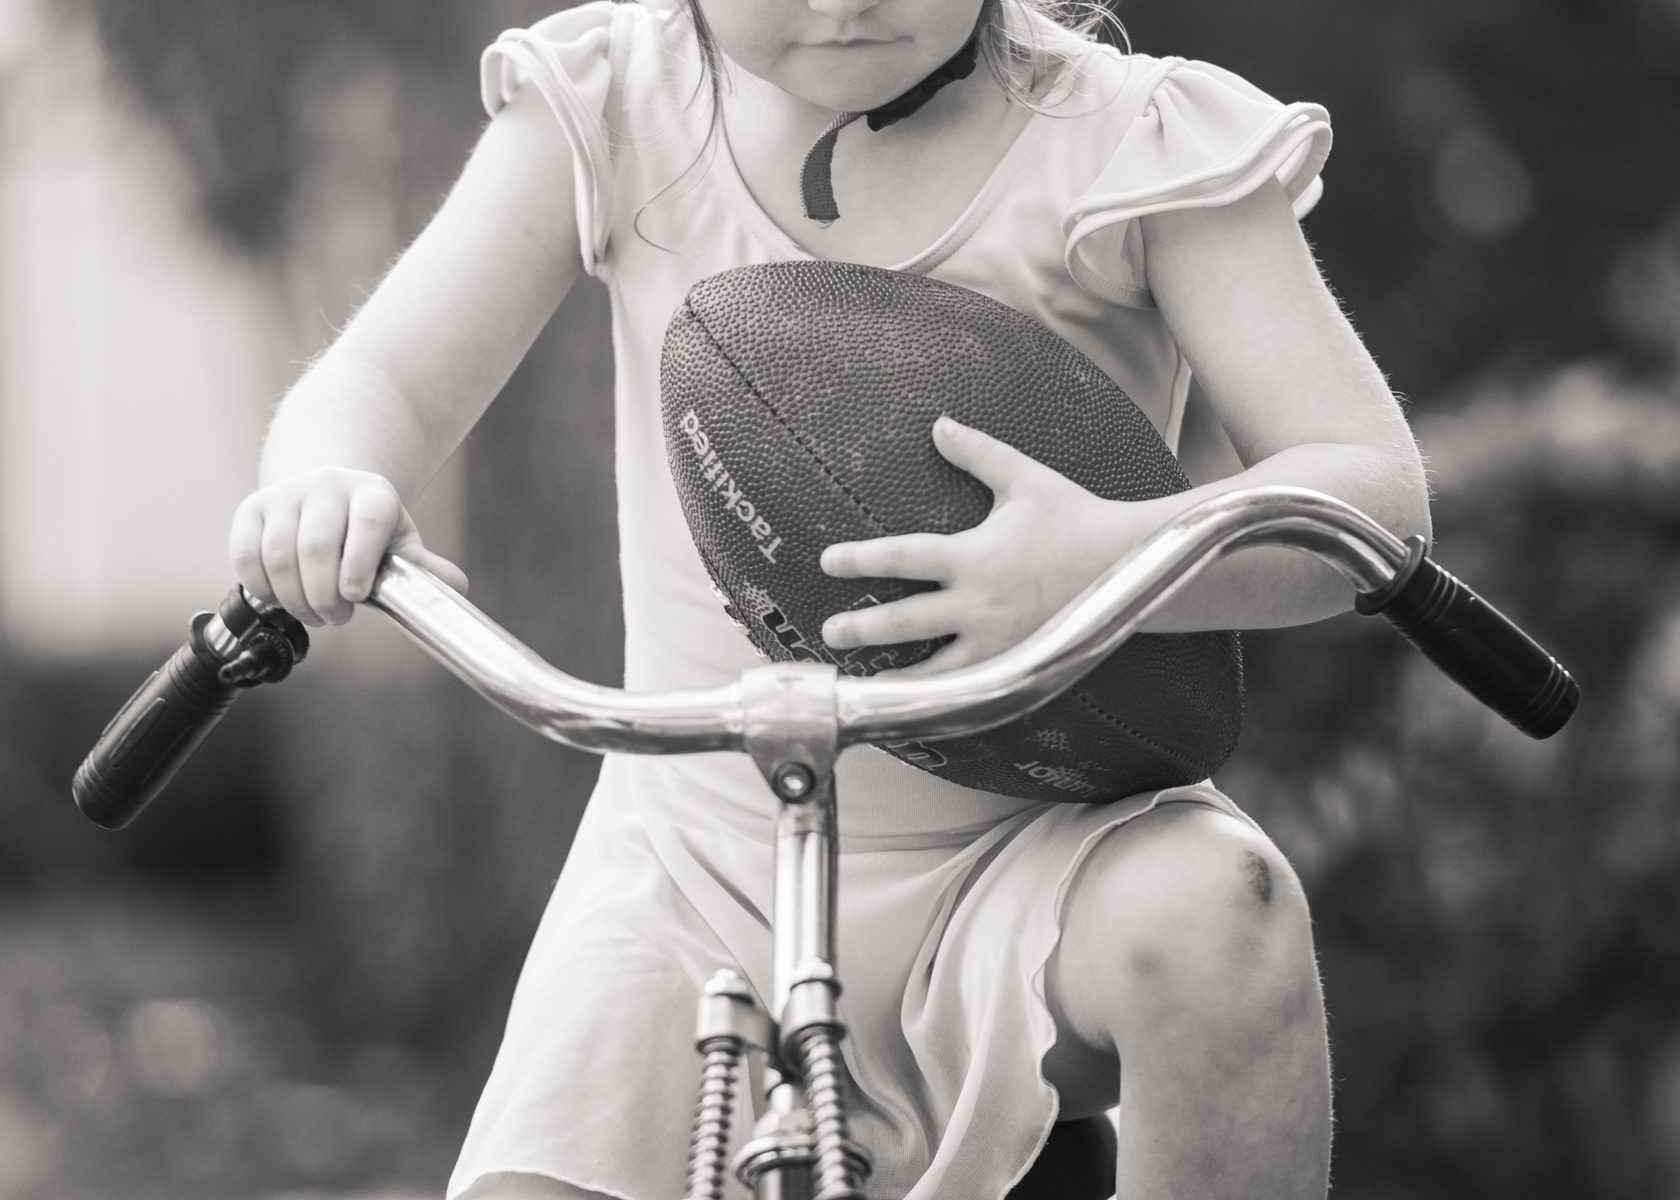 girl wearing leotard riding bike holding football